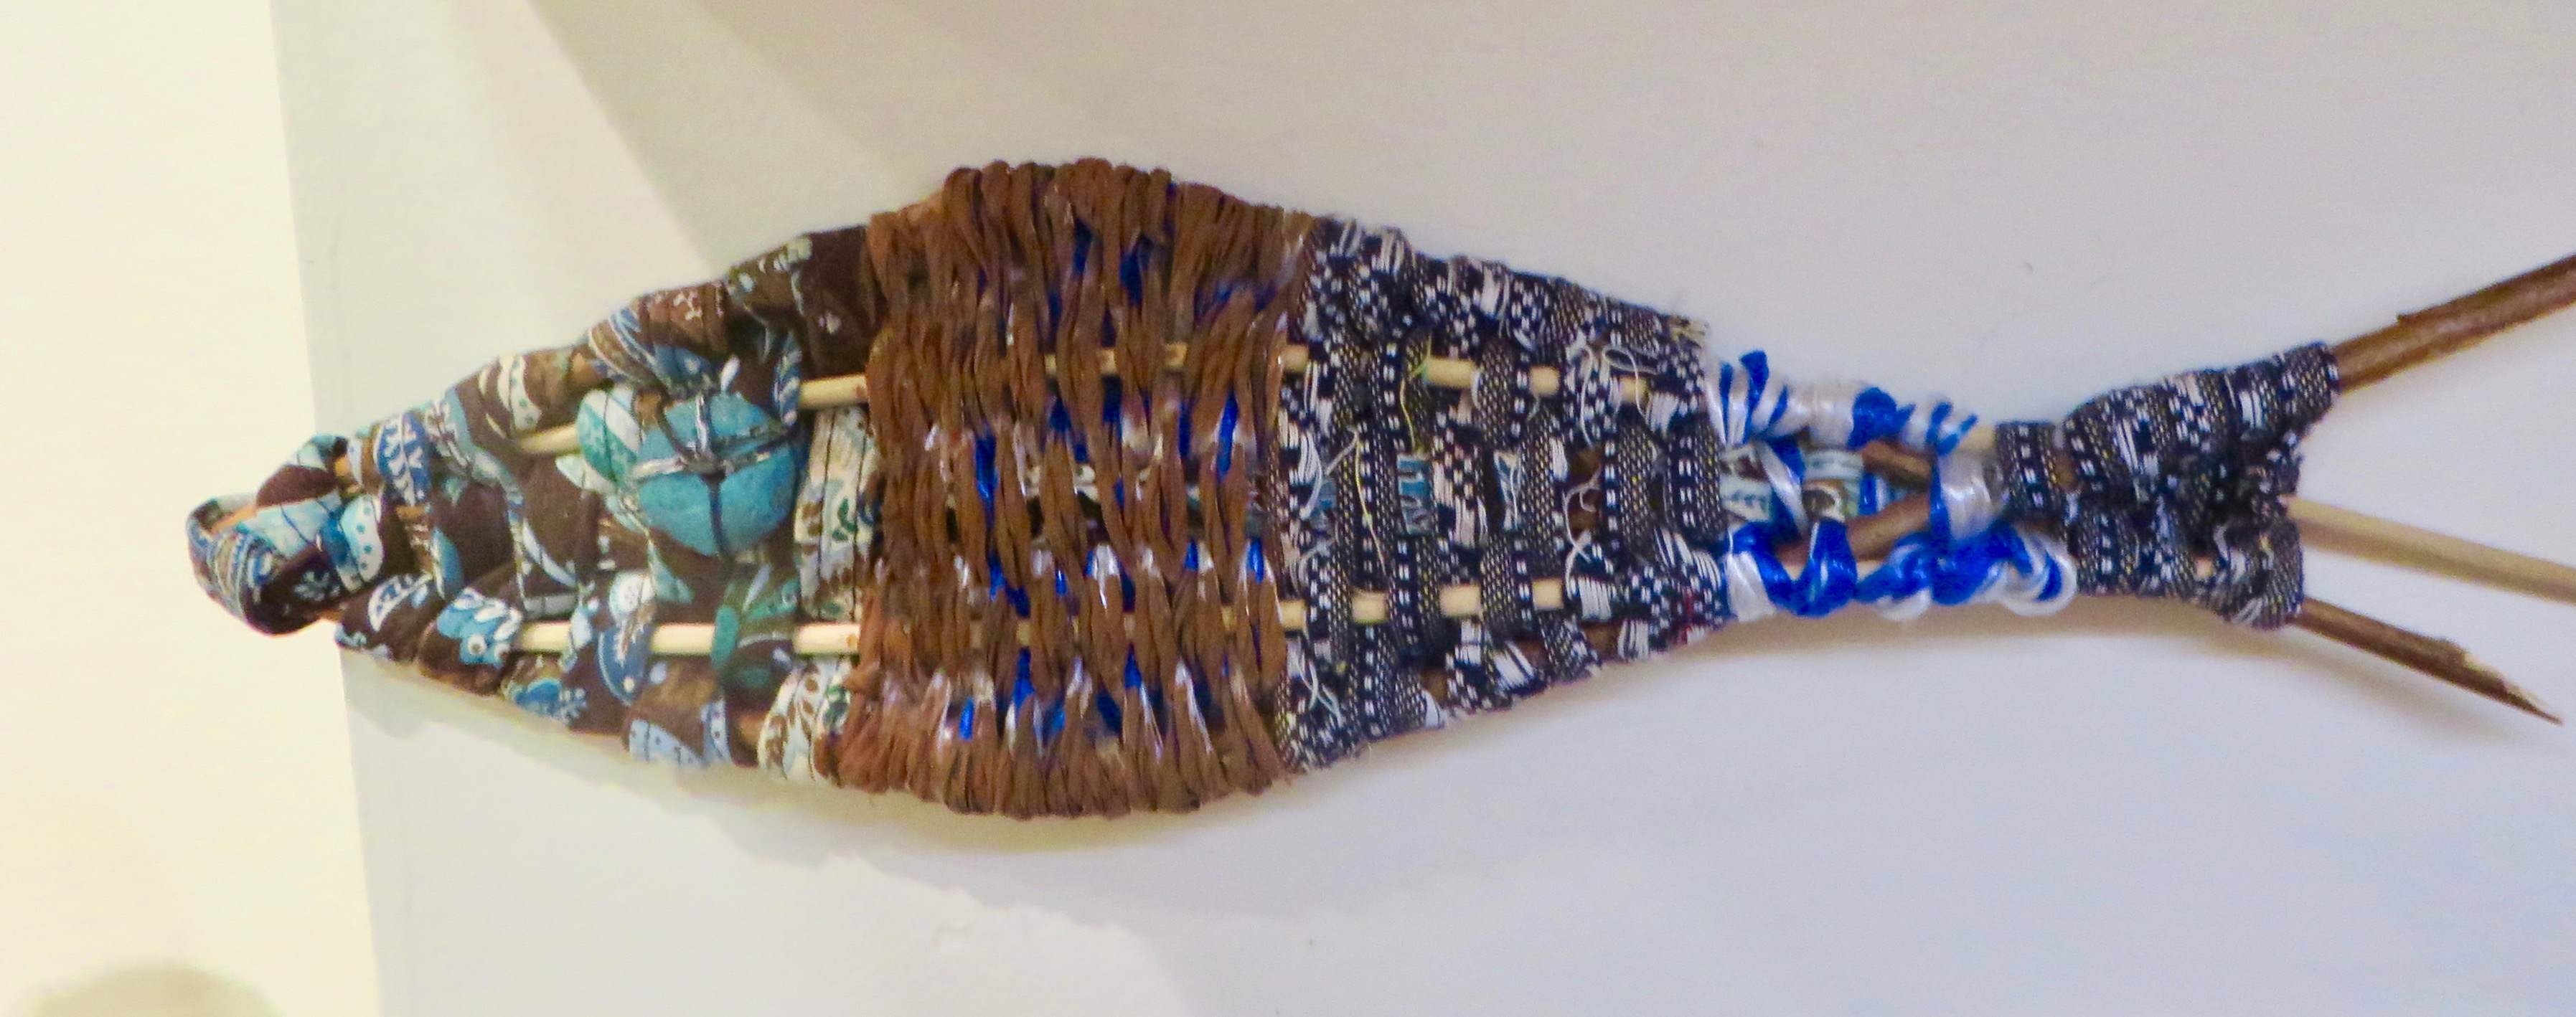 Woven fish sculpture with glass eye and reed body.